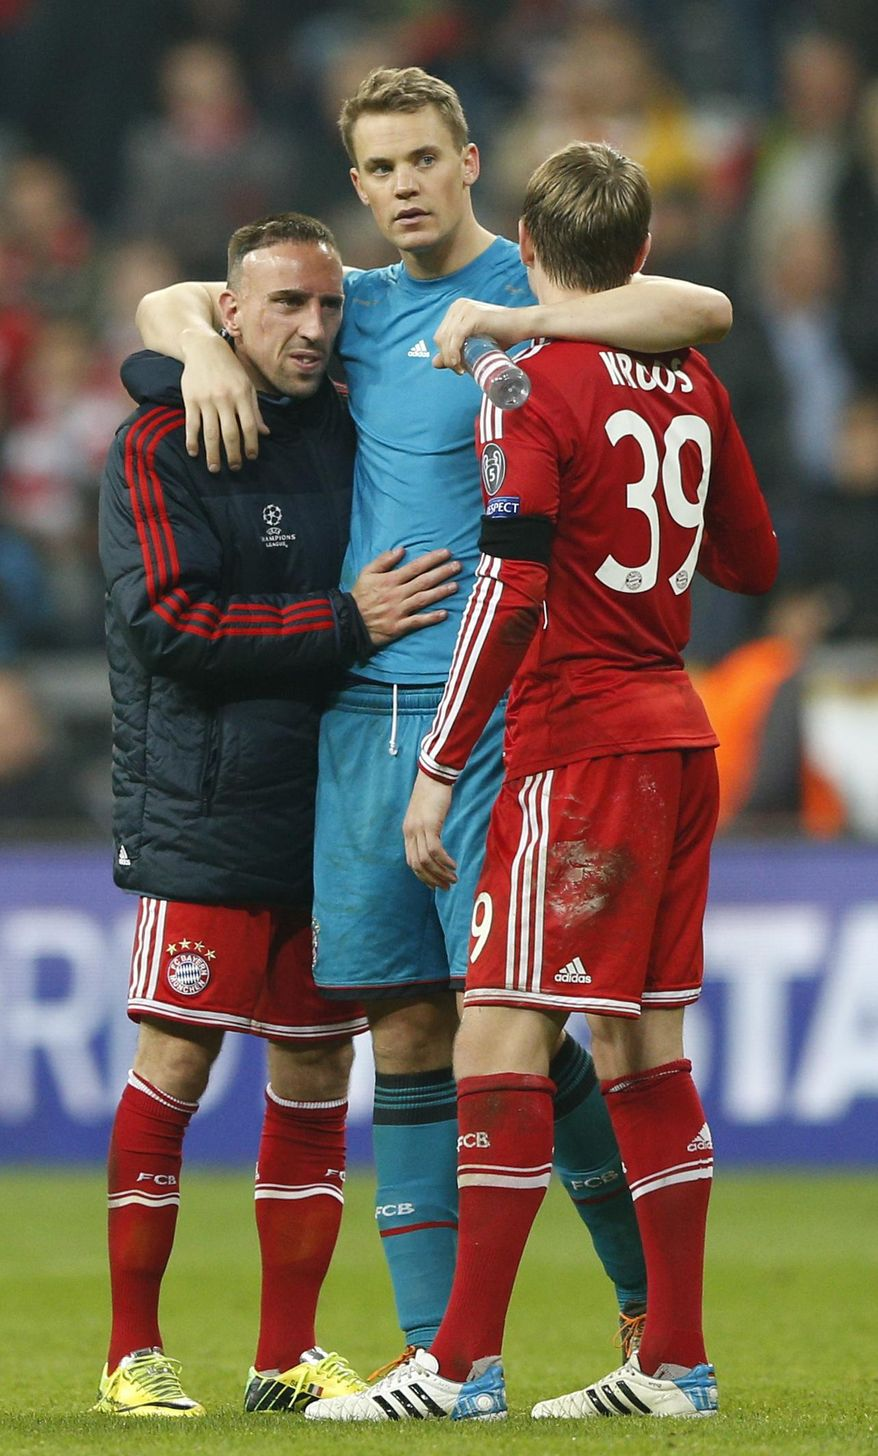 Bayern goalkeeper Manuel Neuer comforts his teammates Franck Ribery, left, and Toni Kroos, right, after losing the Champions League semifinal second leg soccer match between Bayern Munich and Real Madrid at the Allianz Arena in Munich, southern Germany, Tuesday, April 29, 2014. (AP Photo/Matthias Schrader)